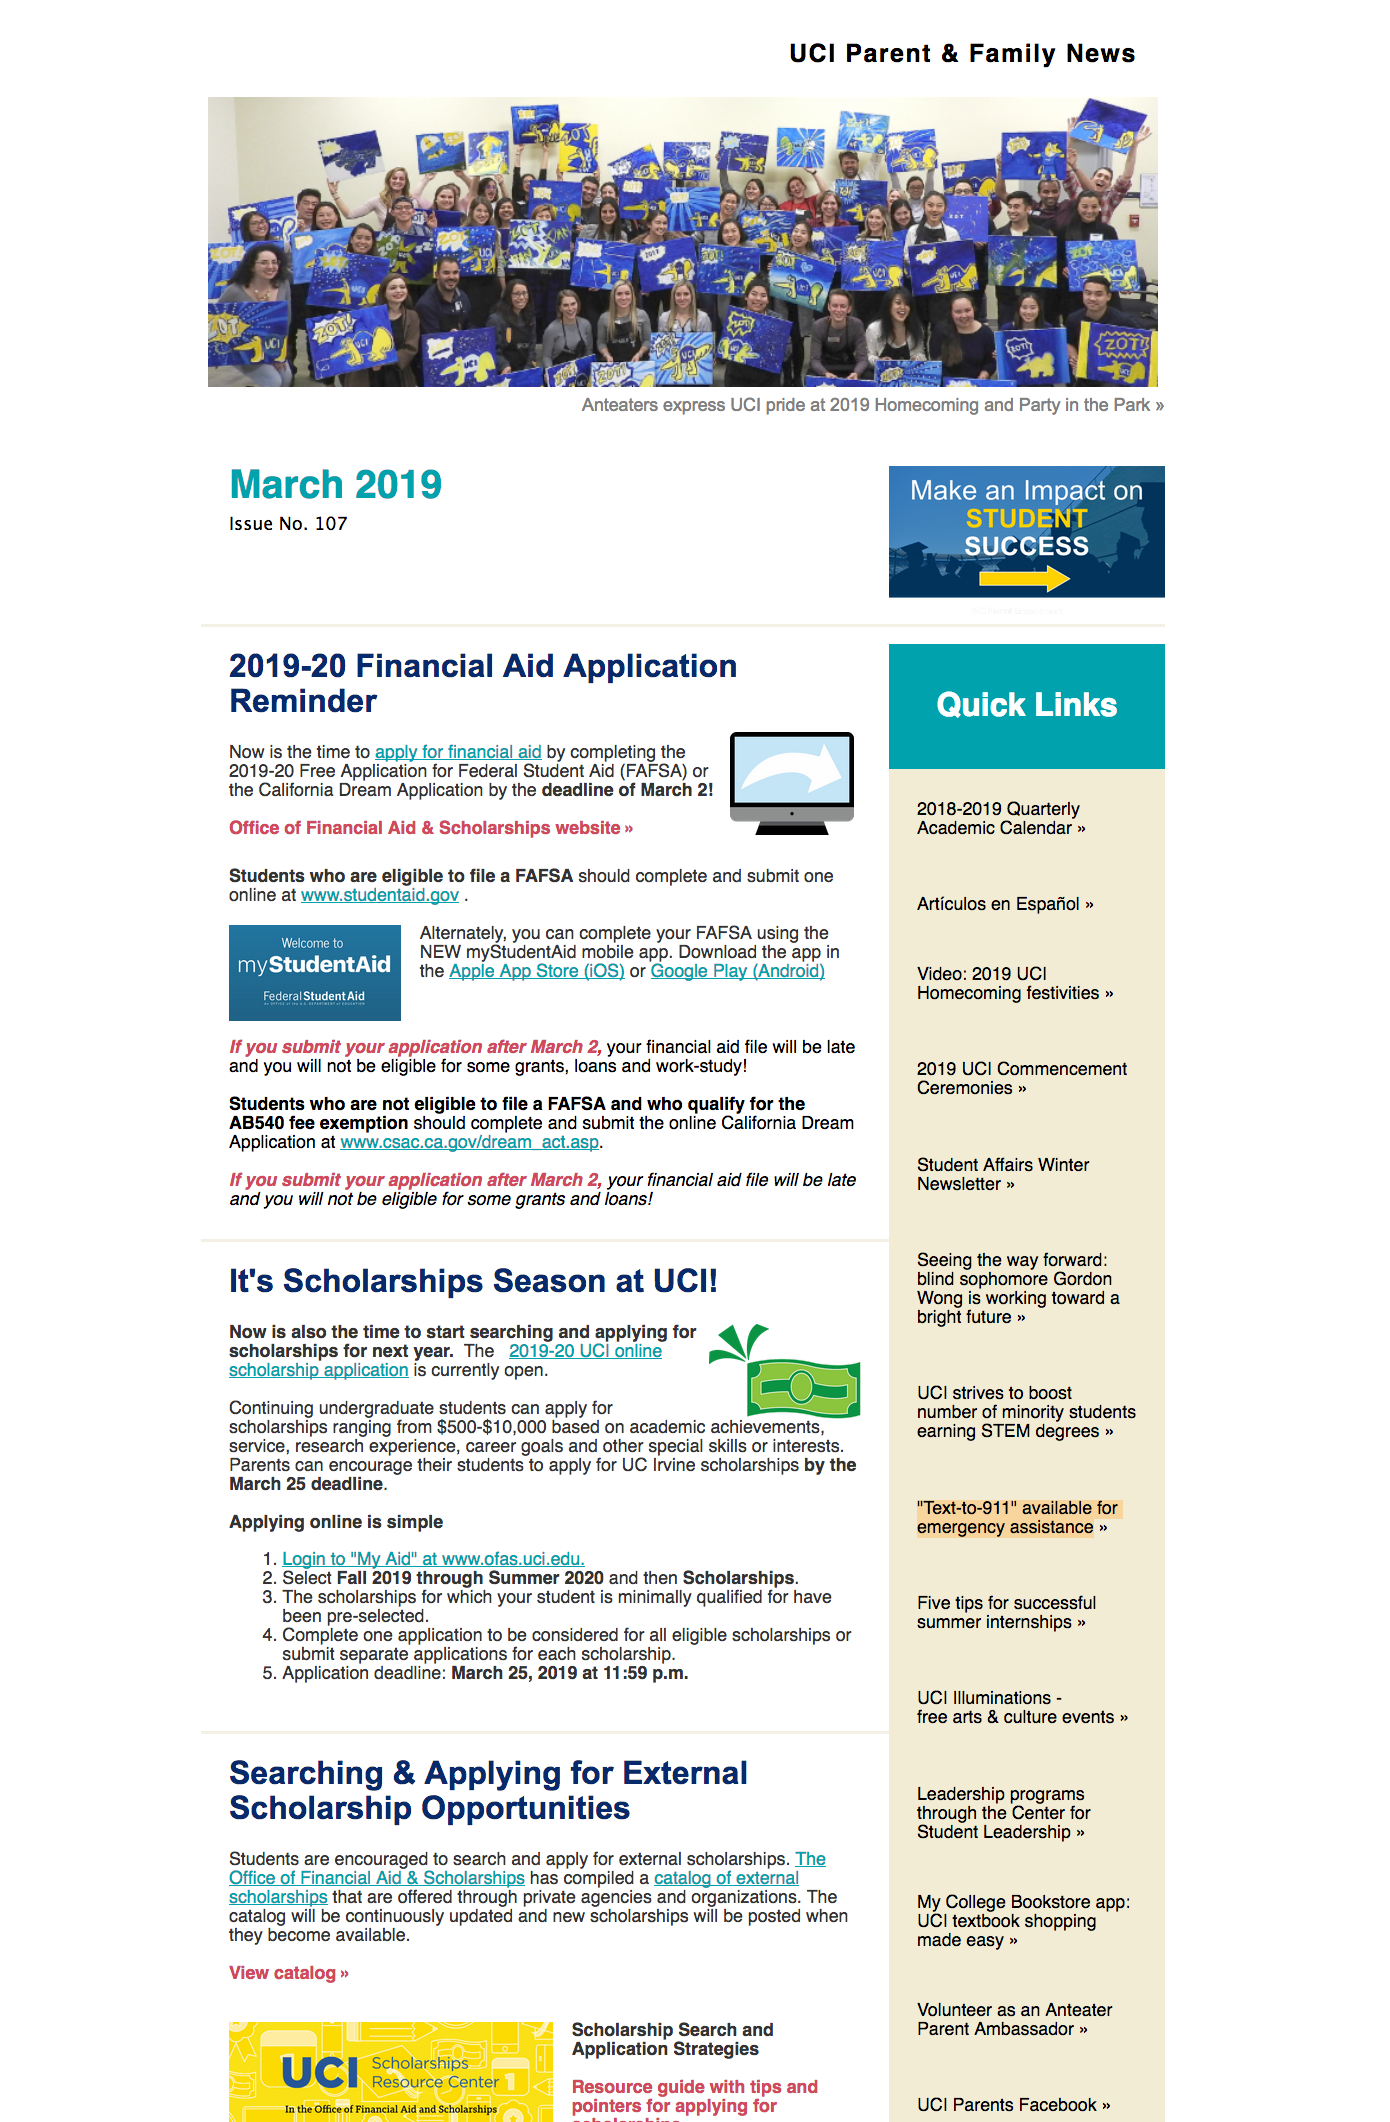 March 2019 eNews